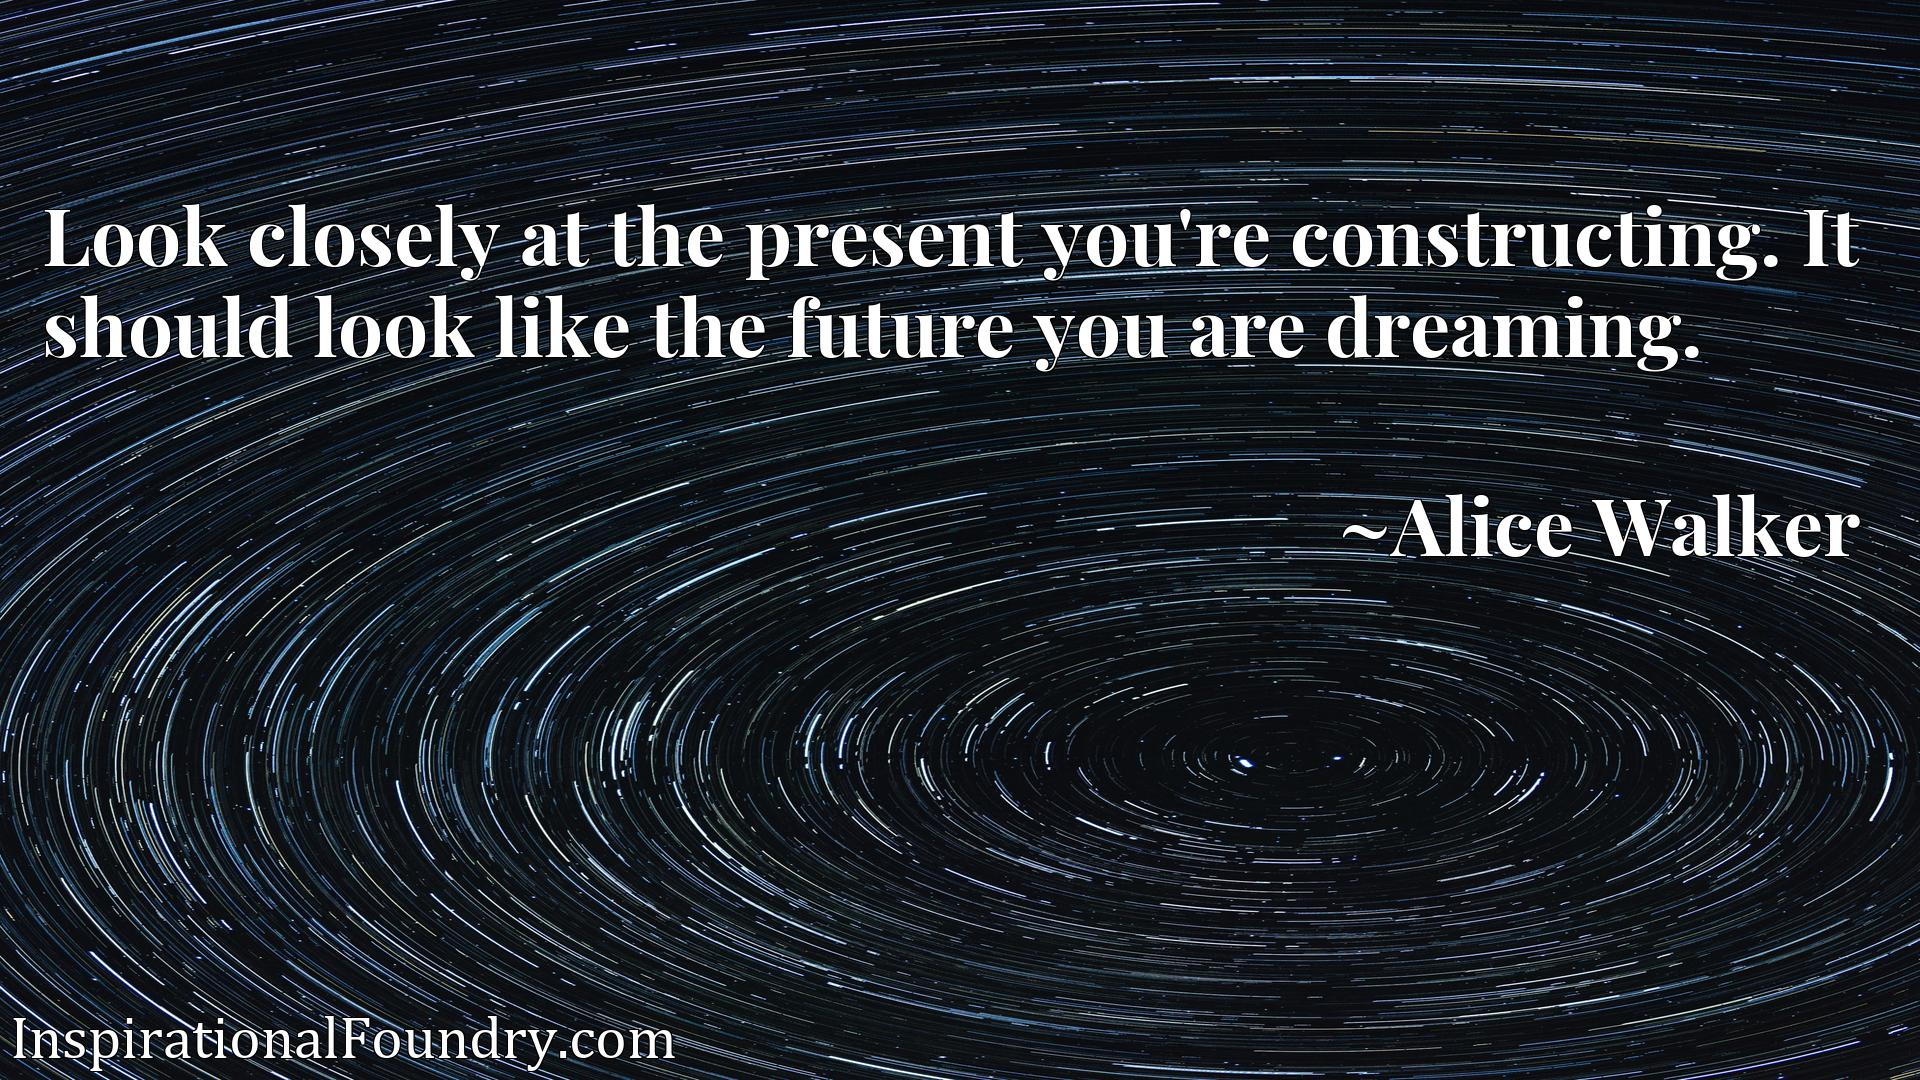 Look closely at the present you're constructing. It should look like the future you are dreaming.